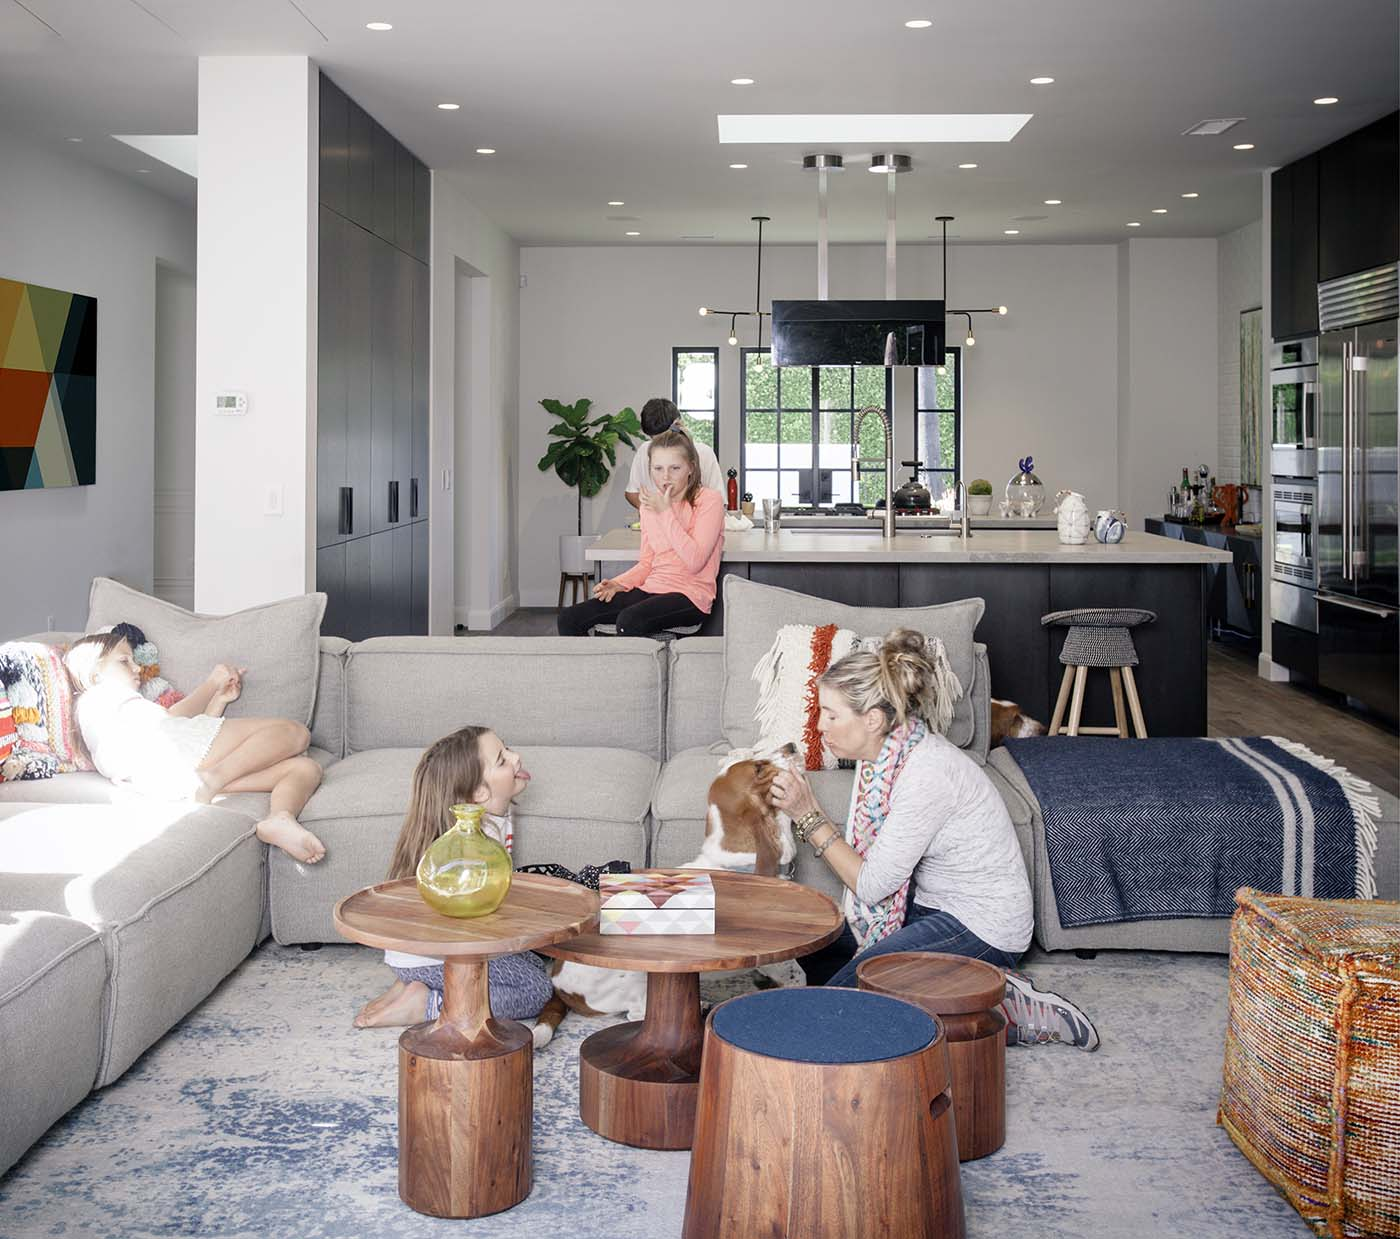 Living room with family and dog playing near bedside tables